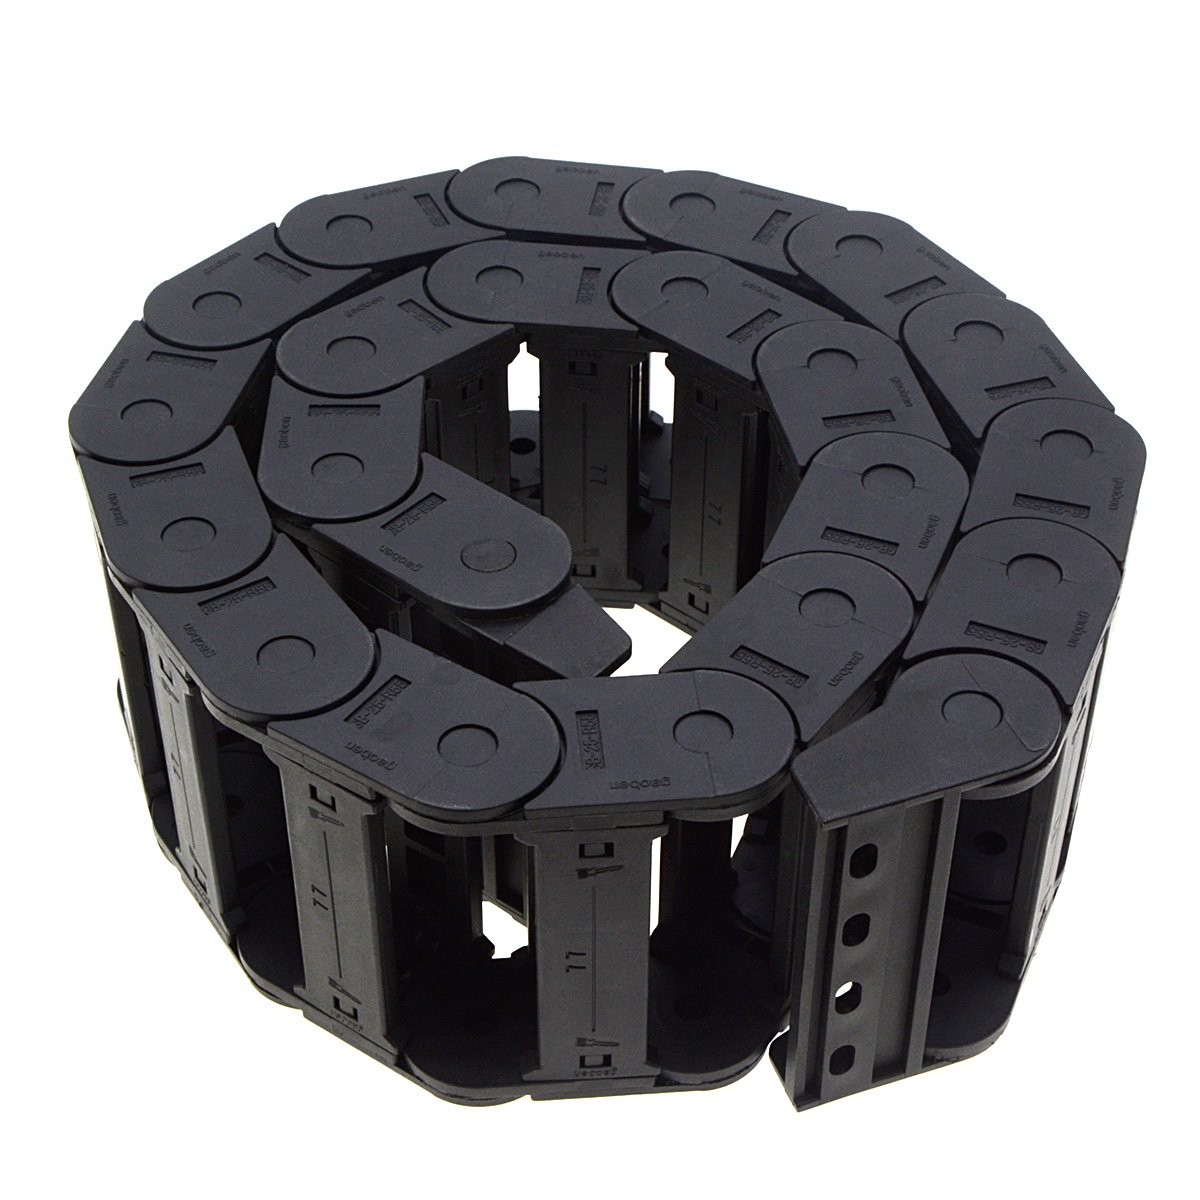 YXQ R55 Drag Chain 25x77mm 1M Flexible Nested Semi Closed Cable Wire Carrier Black Plastic for Electrical Machines by YXQ